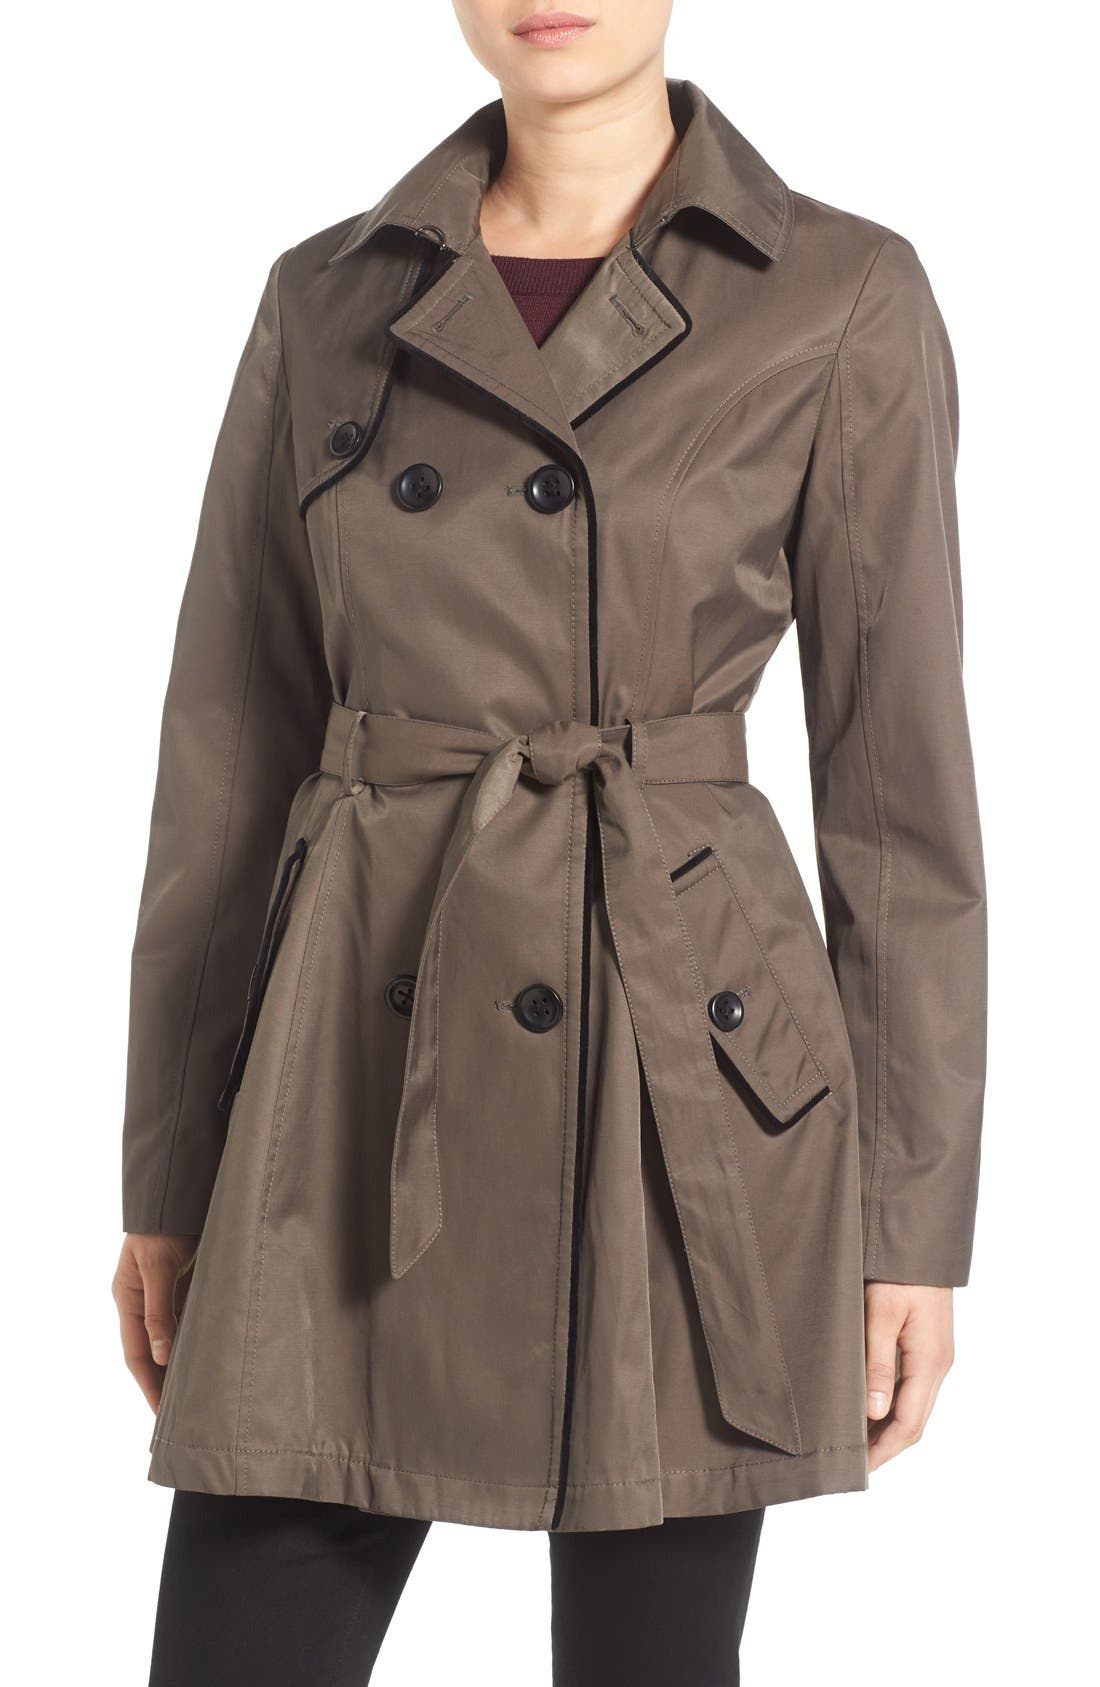 Alternate Image 1 Selected - Betsey Johnson Corset Back Trench Coat